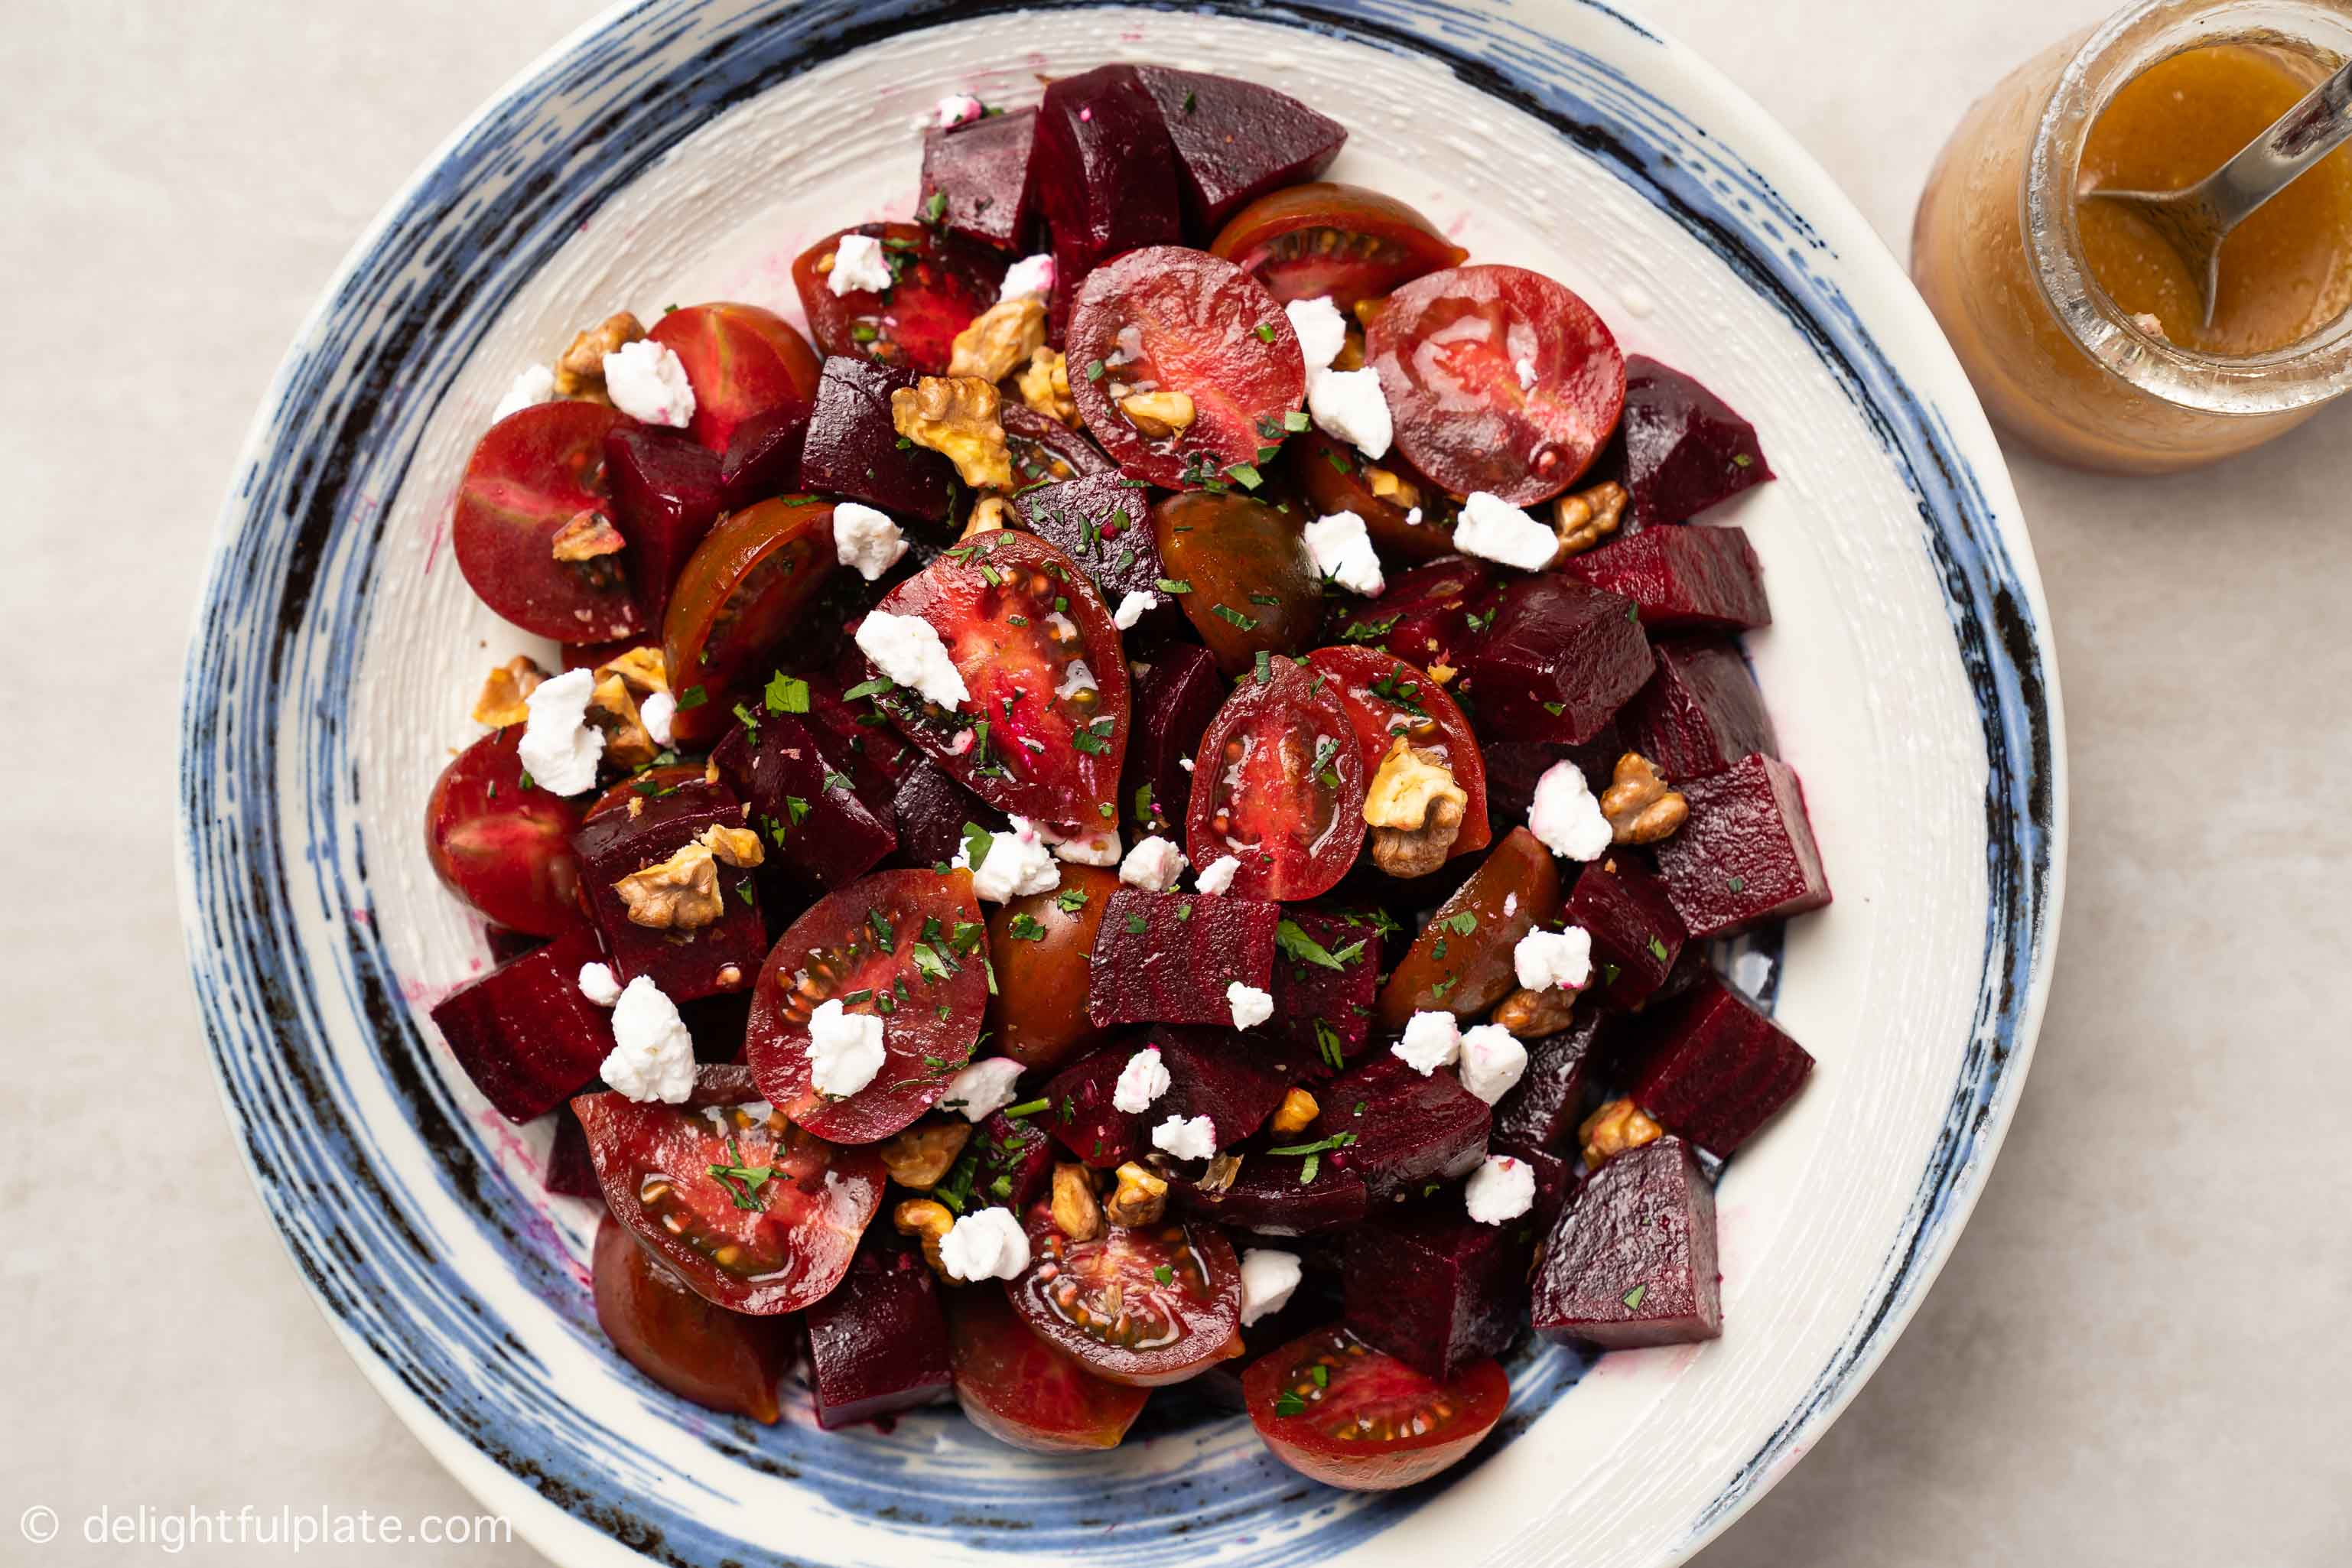 a plate of Roasted Beetroot Salad with Goat Cheese, Walnut and Cherry Tomato